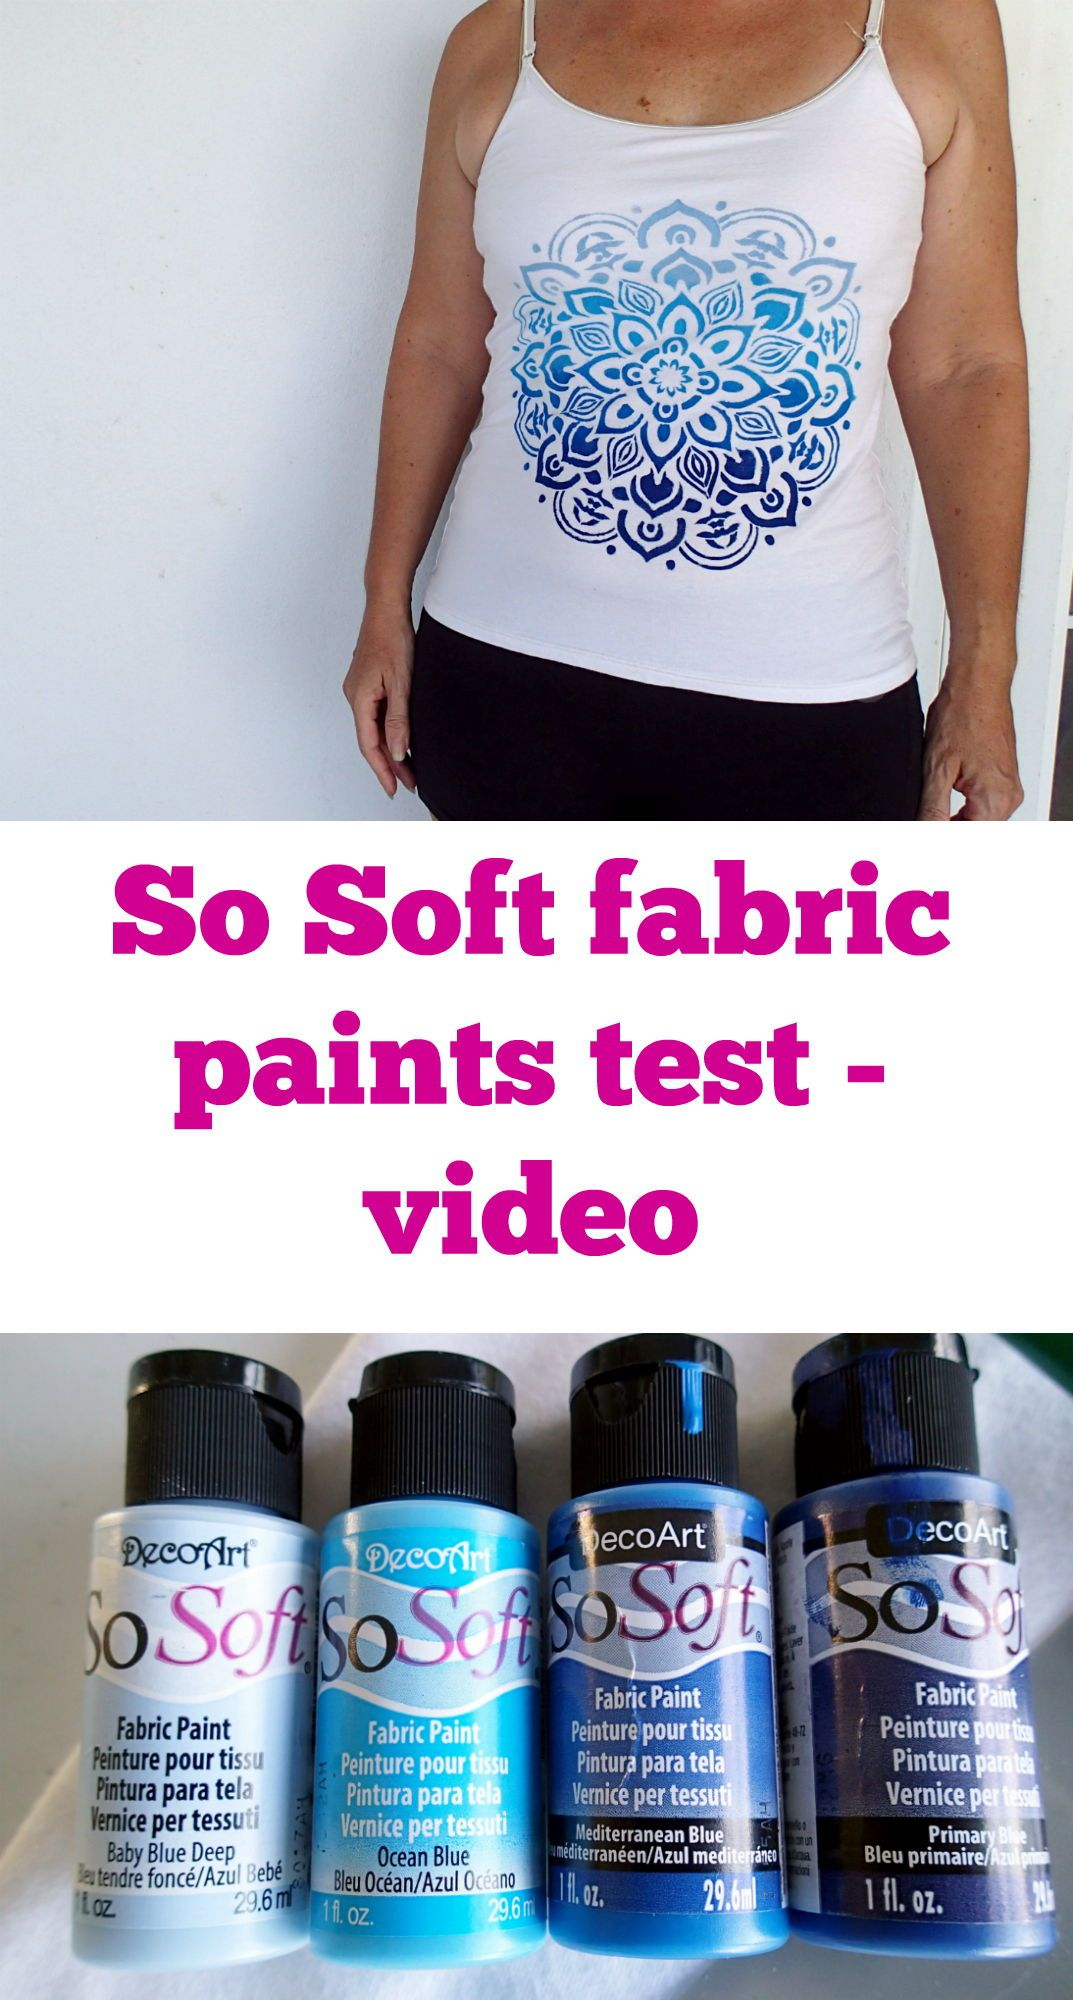 Create Custom Clothing With Fabric Paints And A Stencil Fabrics Paints Have Come A Long Way And Are Now Soft Colorful A Fabric Painting Fabric Paint Stencils